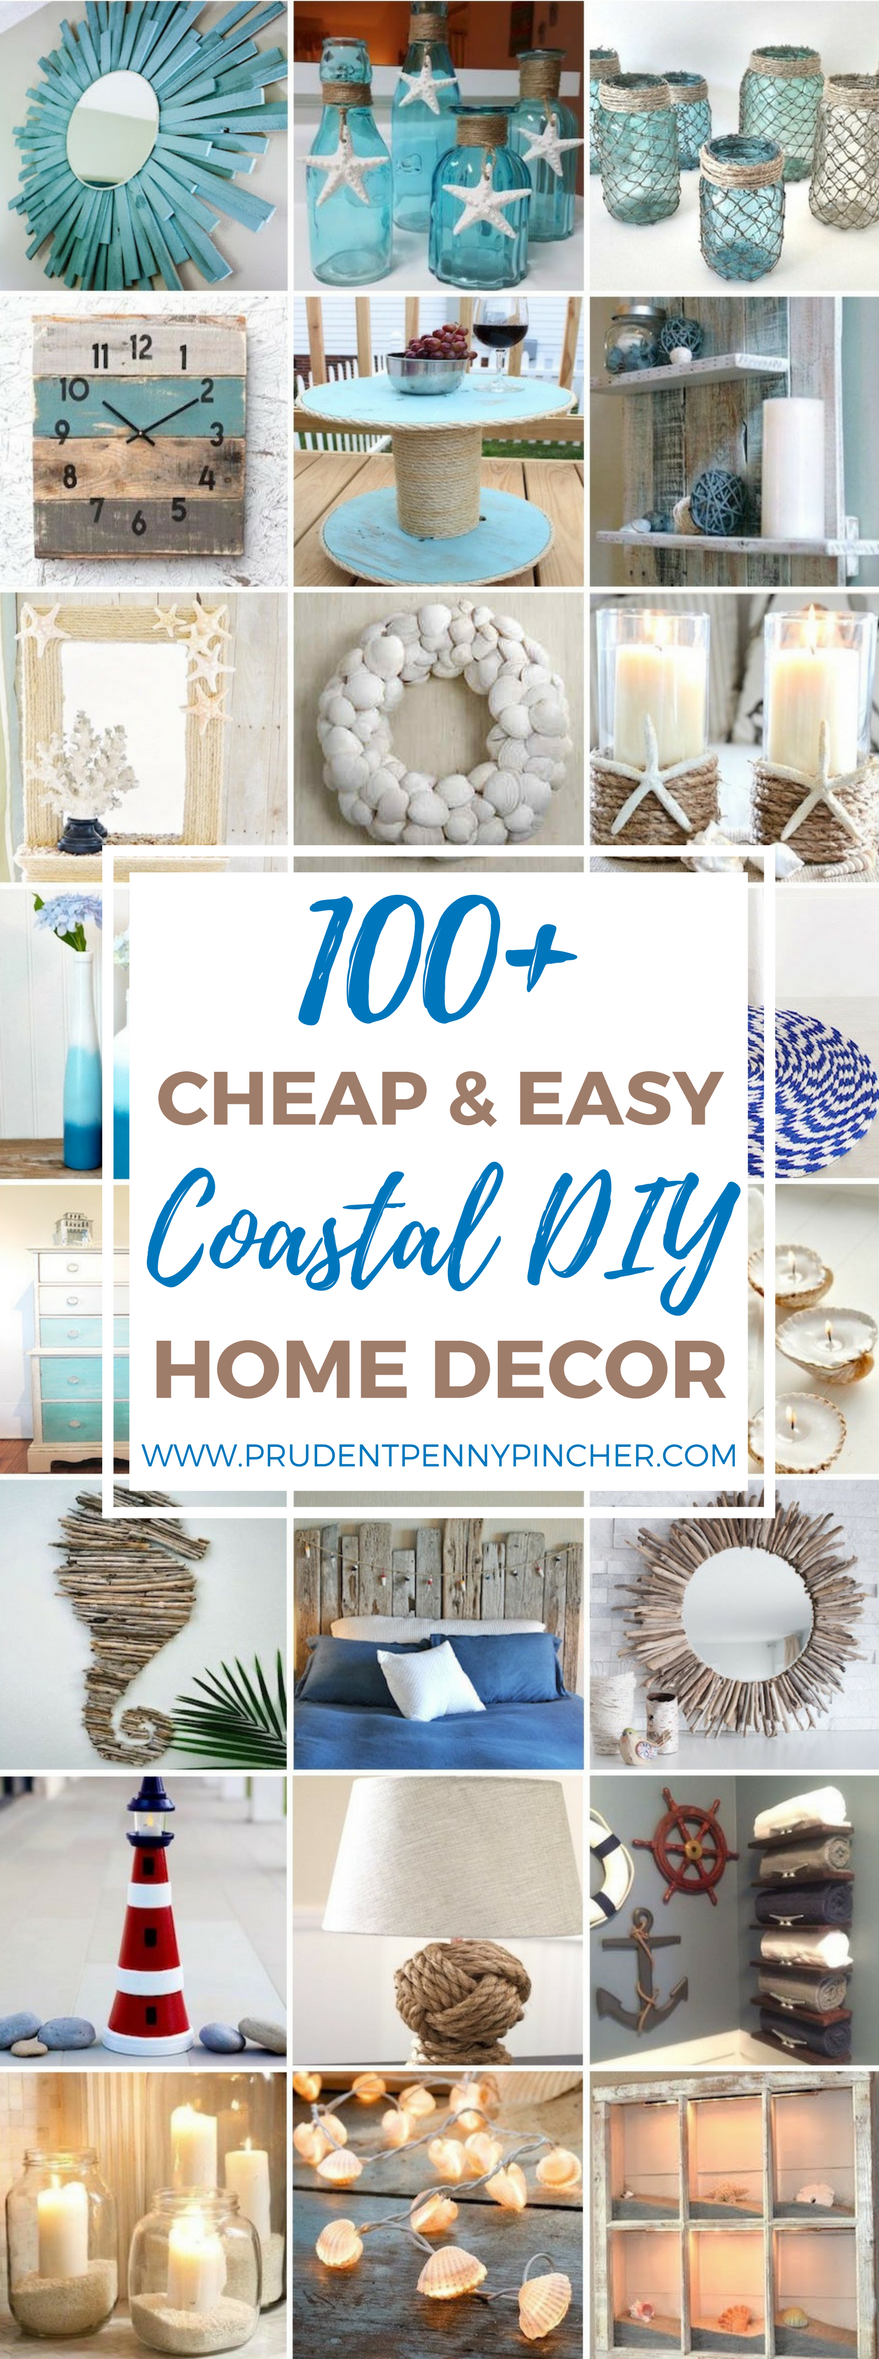 150 Coastal Diy Home Decor Ideas Diy Home Decor Handmade Home